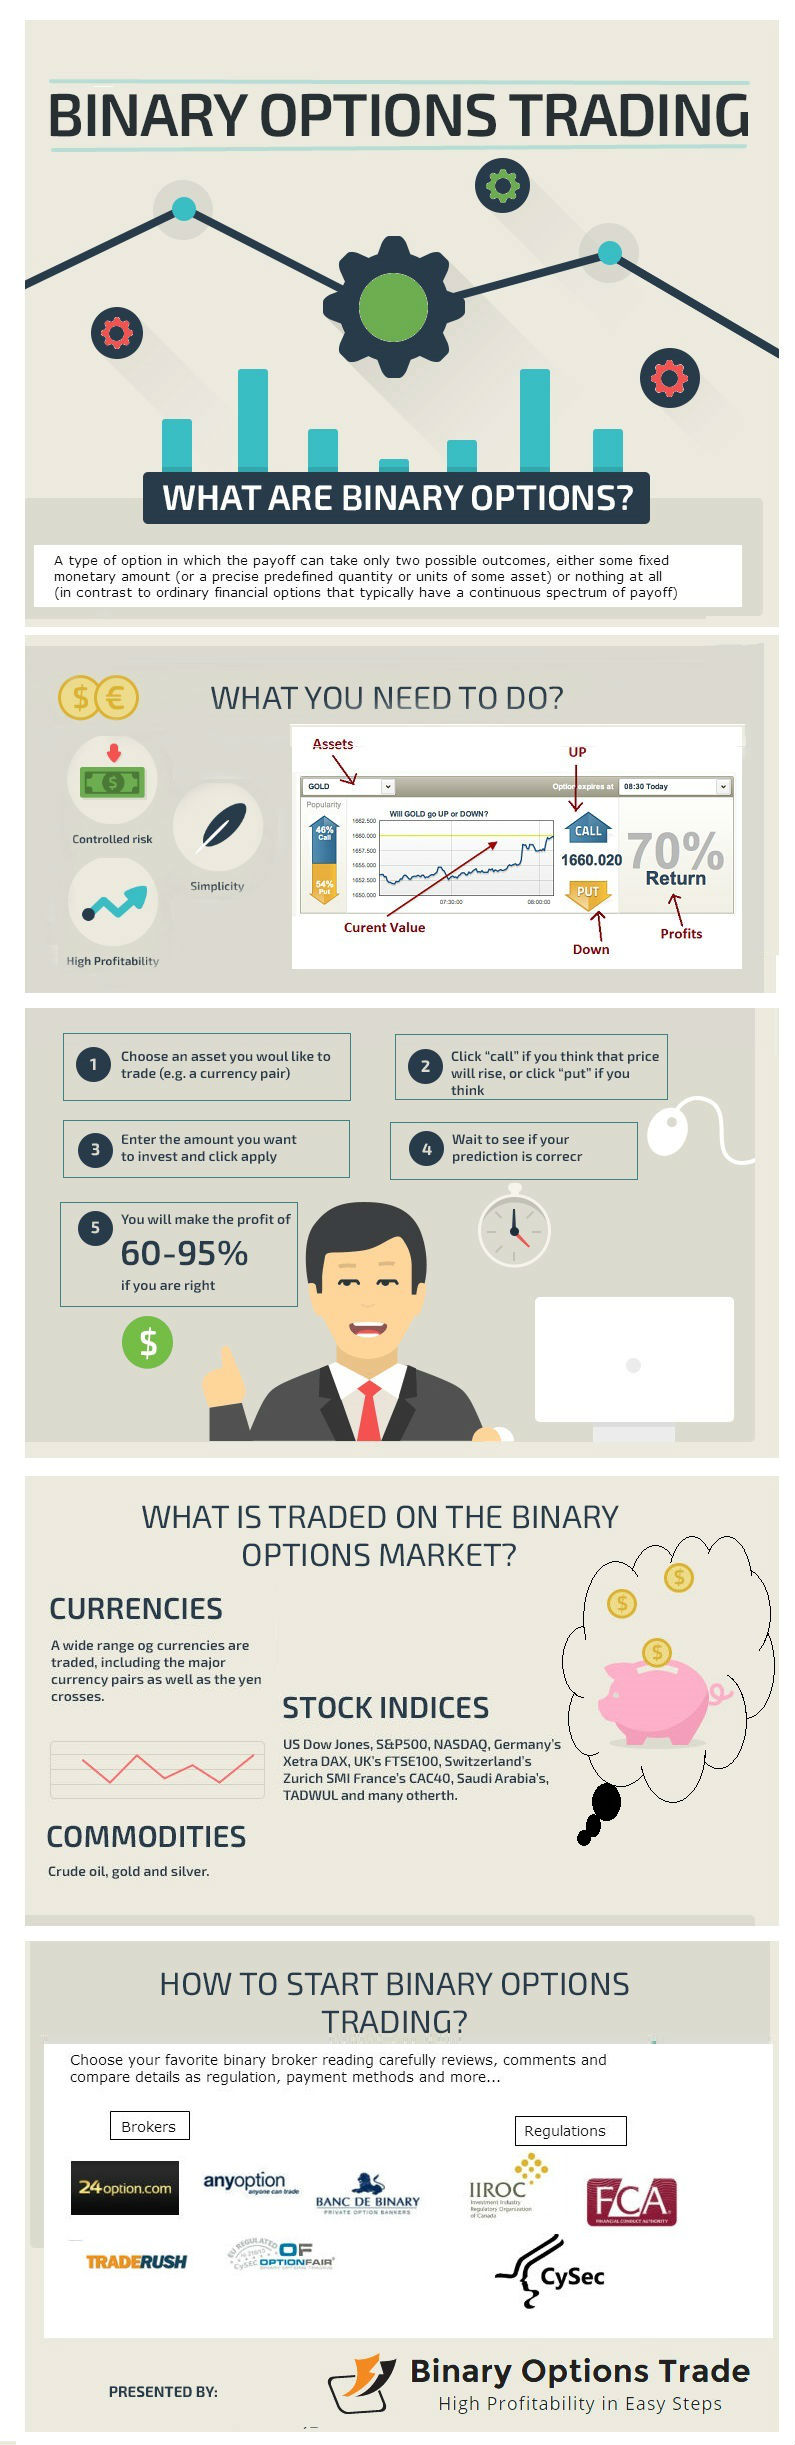 How to trade news in binary options